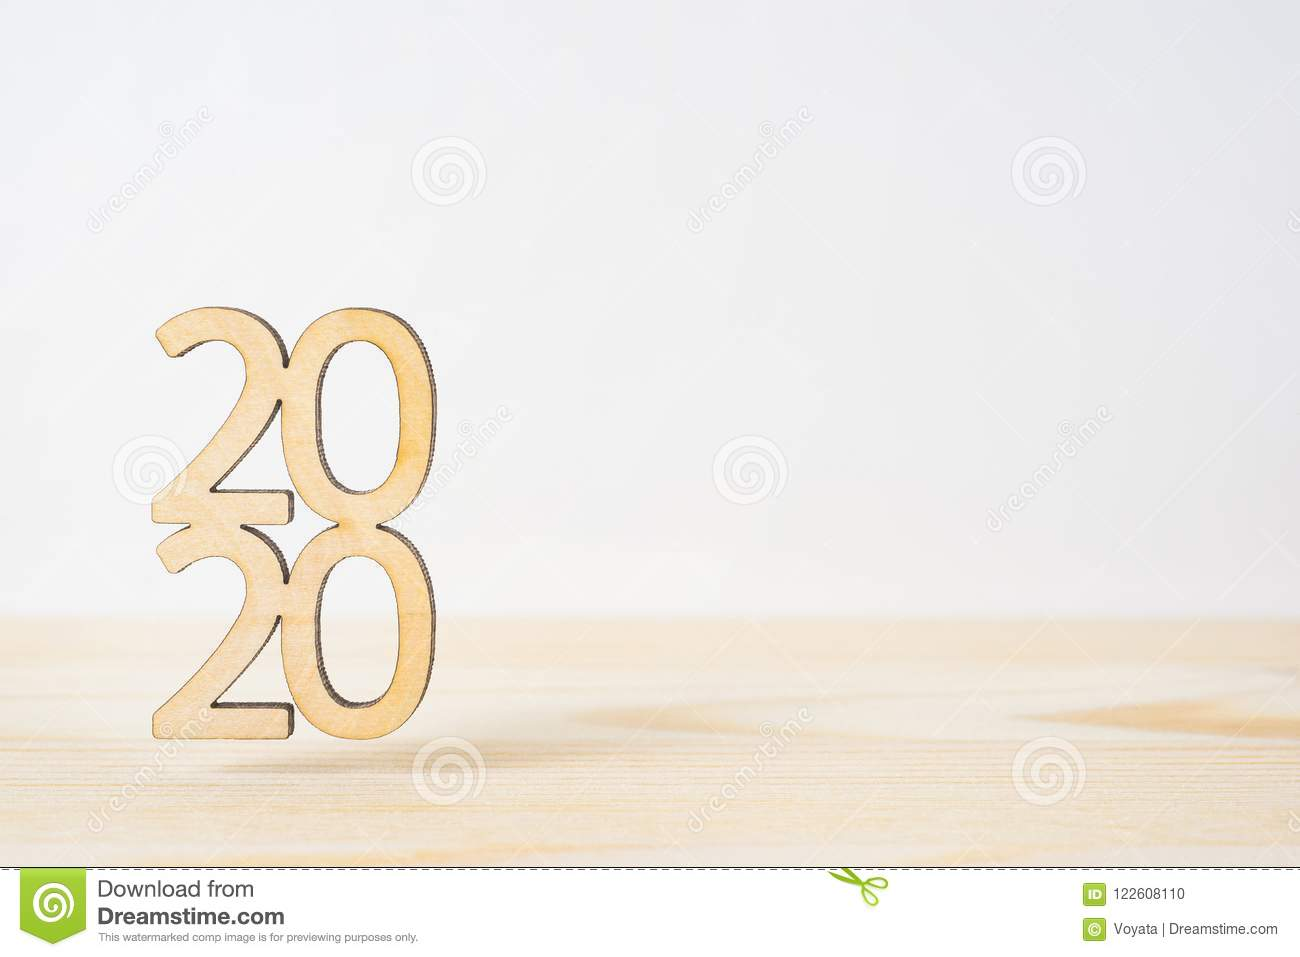 Wooden word 2020 on table and white background